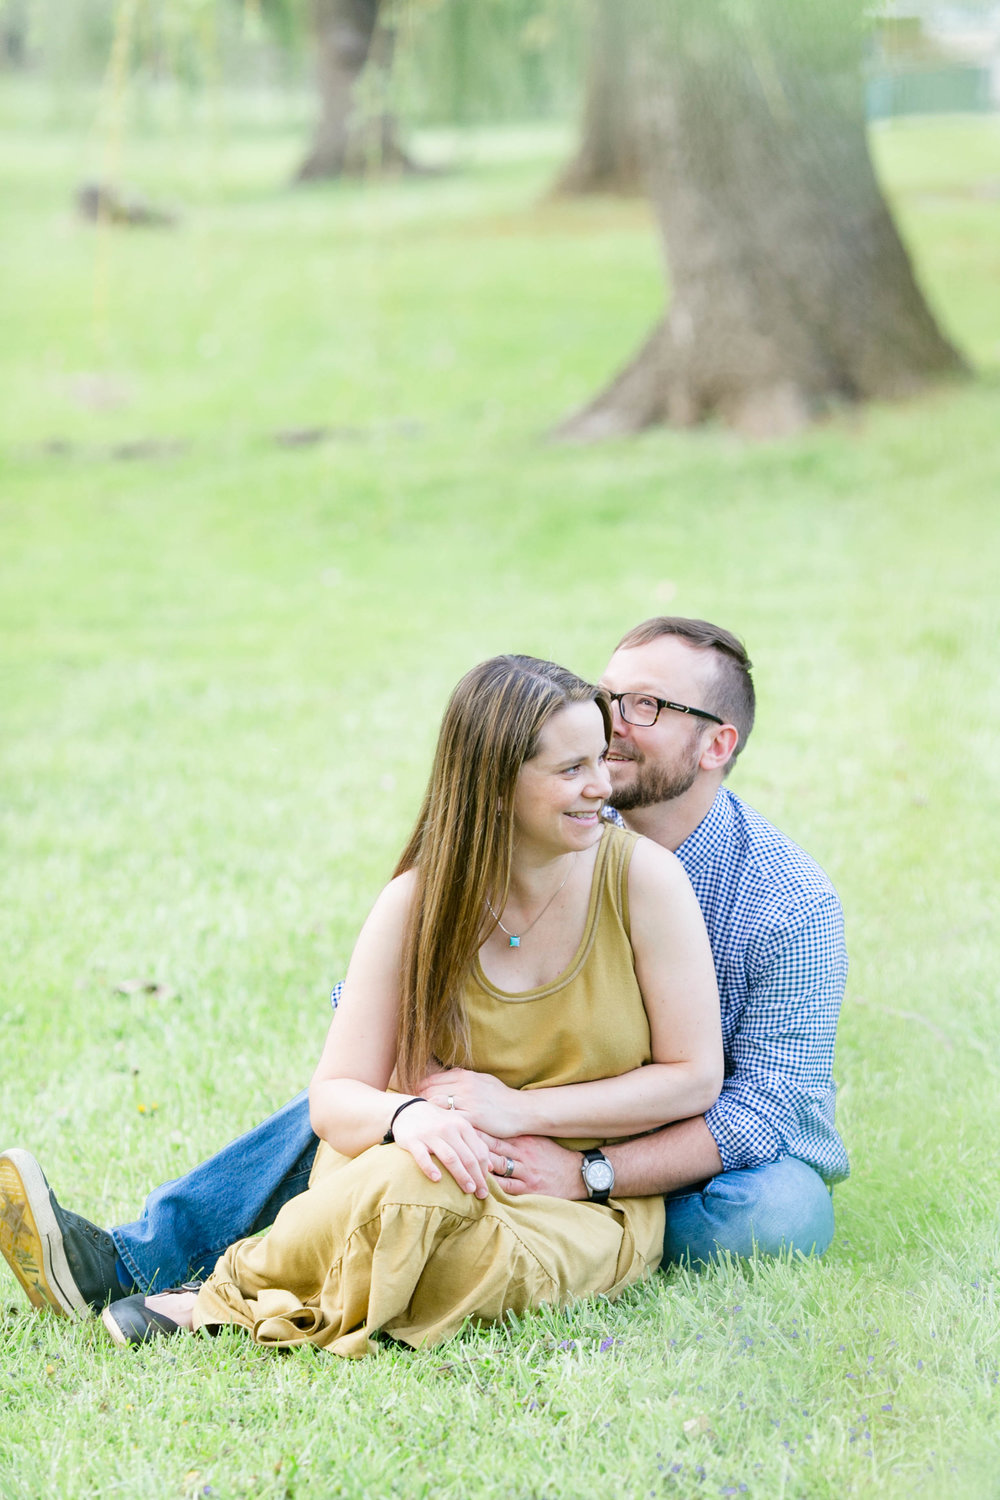 East Tennessee photography, Johnson City, Tri Cities, Jonesborough, family session, spring, engagement, wedding photographer, anniversary photos, portraits, bright and airy photography